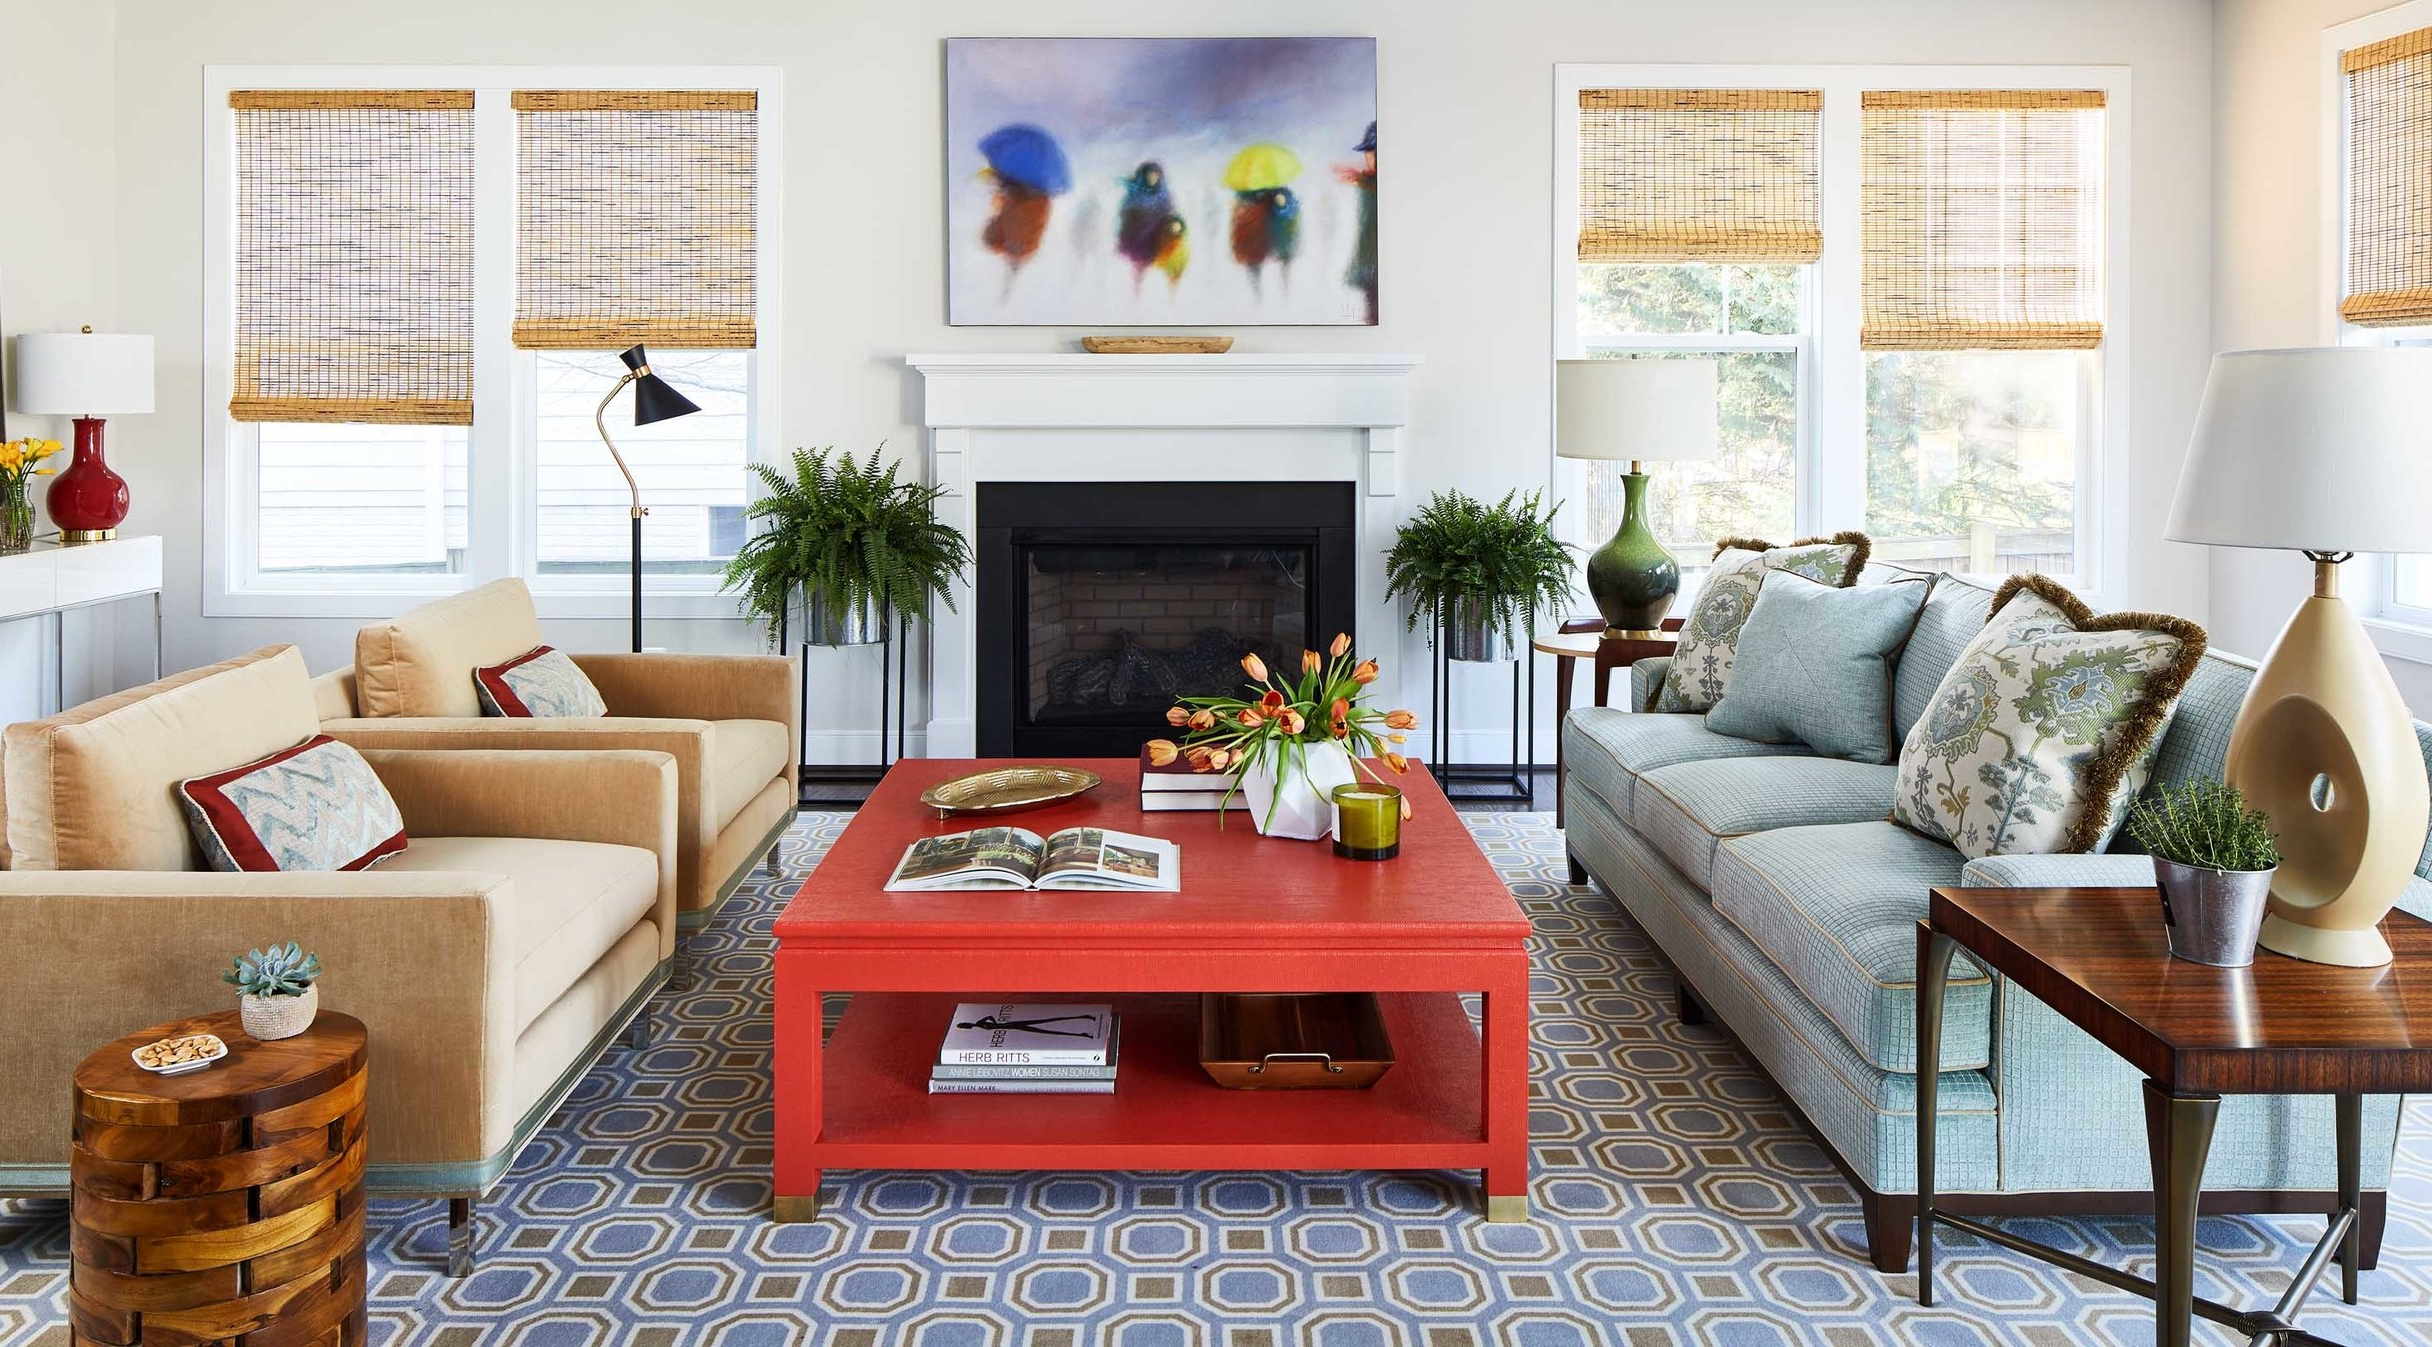 Living room with red table best of Boston Cambridge DC top-designers Dane Austin Design